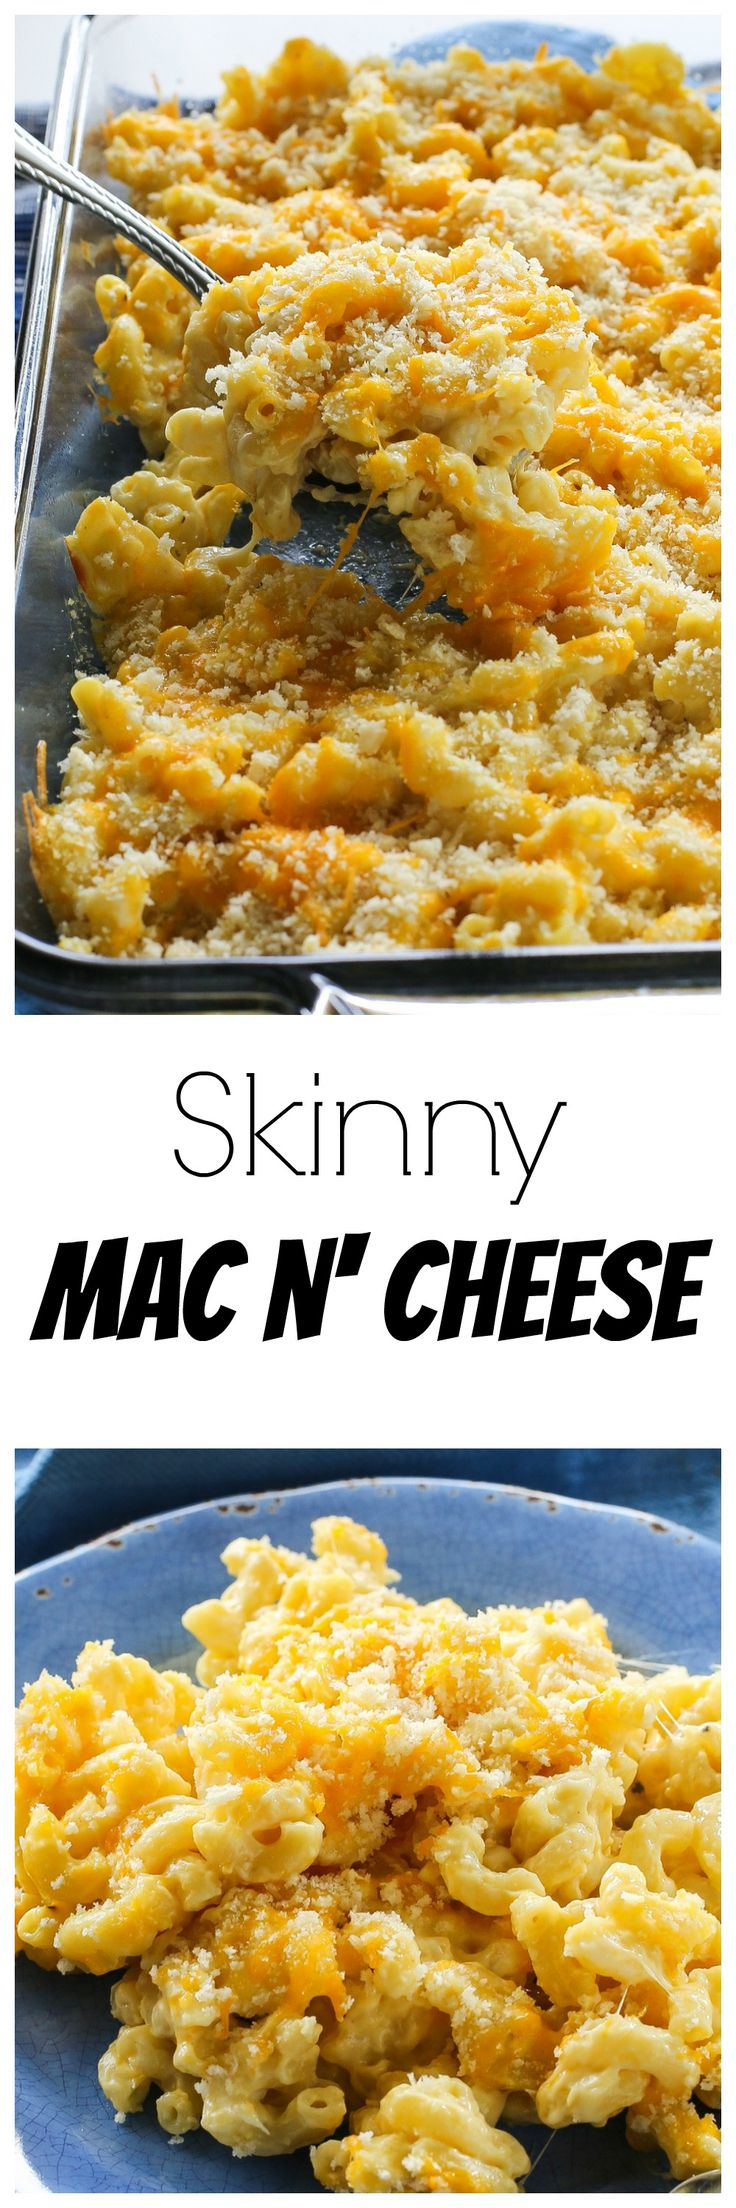 Skinny Mac N' Cheese - half the calories with all the creaminess. the-girl-who-ate-everything.com